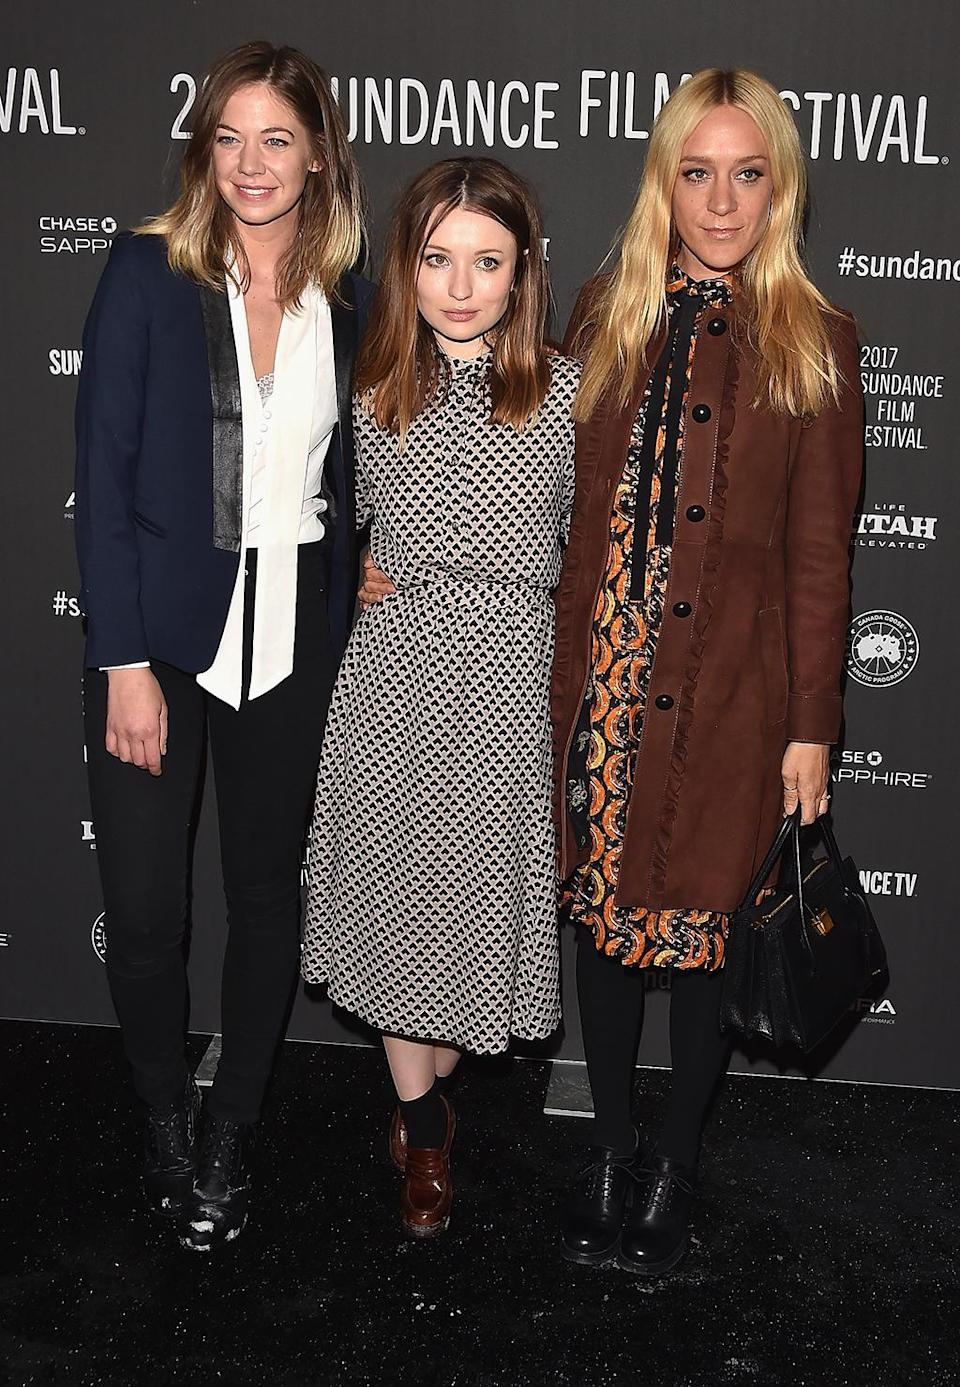 <p>The stars arrive for the 'Golden Exits' premiere on Jan. 2. (Photo: Alberto E. Rodriguez/Getty Images) </p>